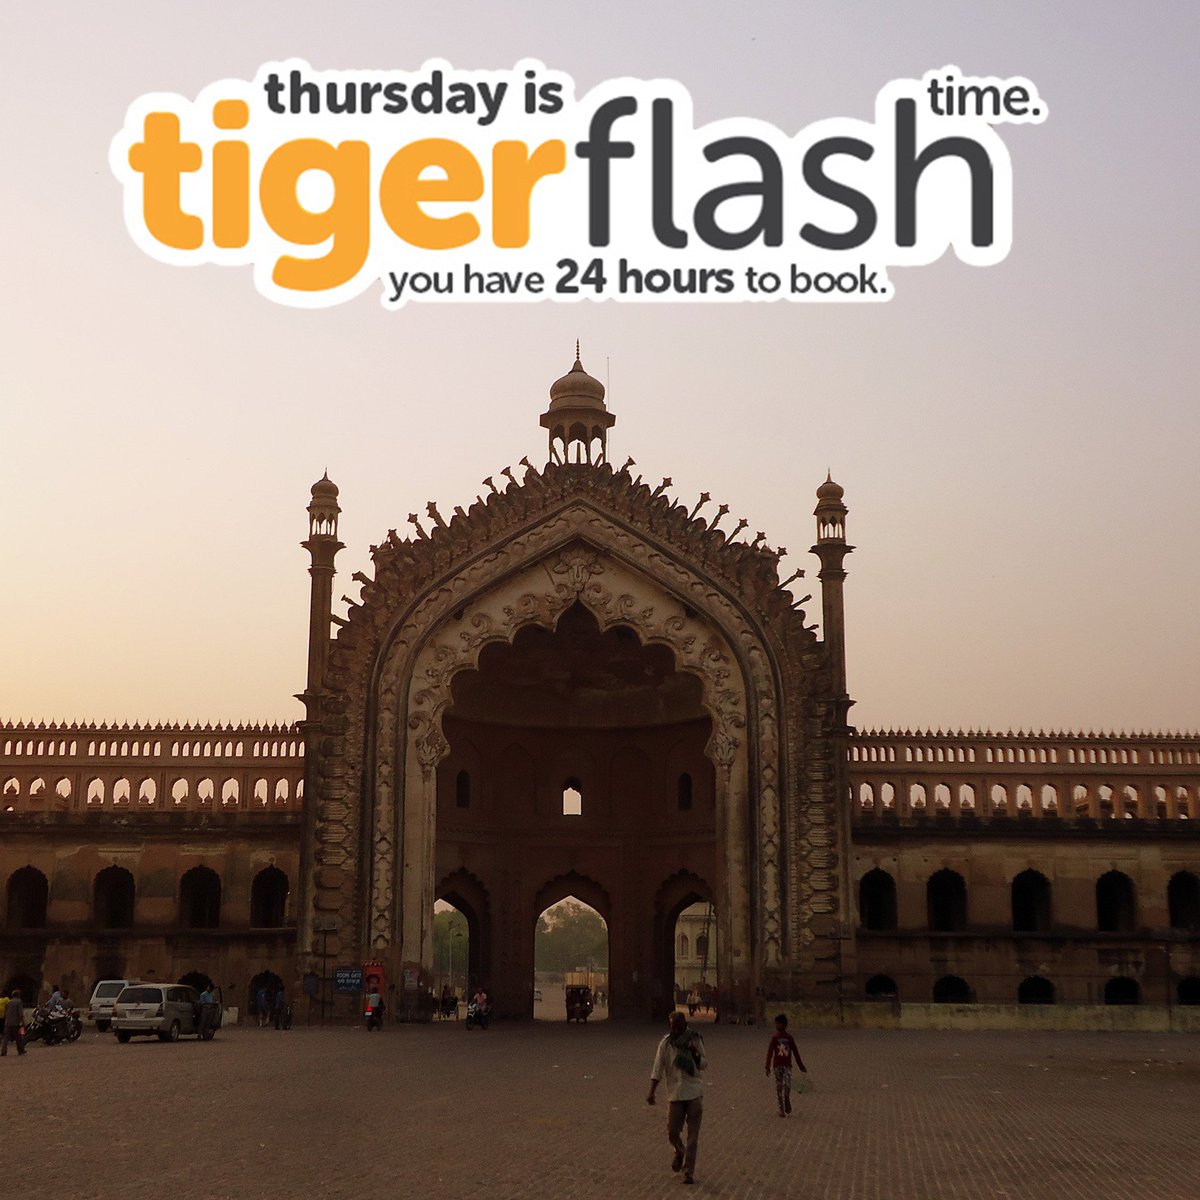 The famous Rumi Darwaza is part of the gorgeous Heritage Arc in India. Fly to Lucknow from only $125*: https://t.co/sPkPCr9K5R #Tigerflash https://t.co/zLMxjEP9Qx